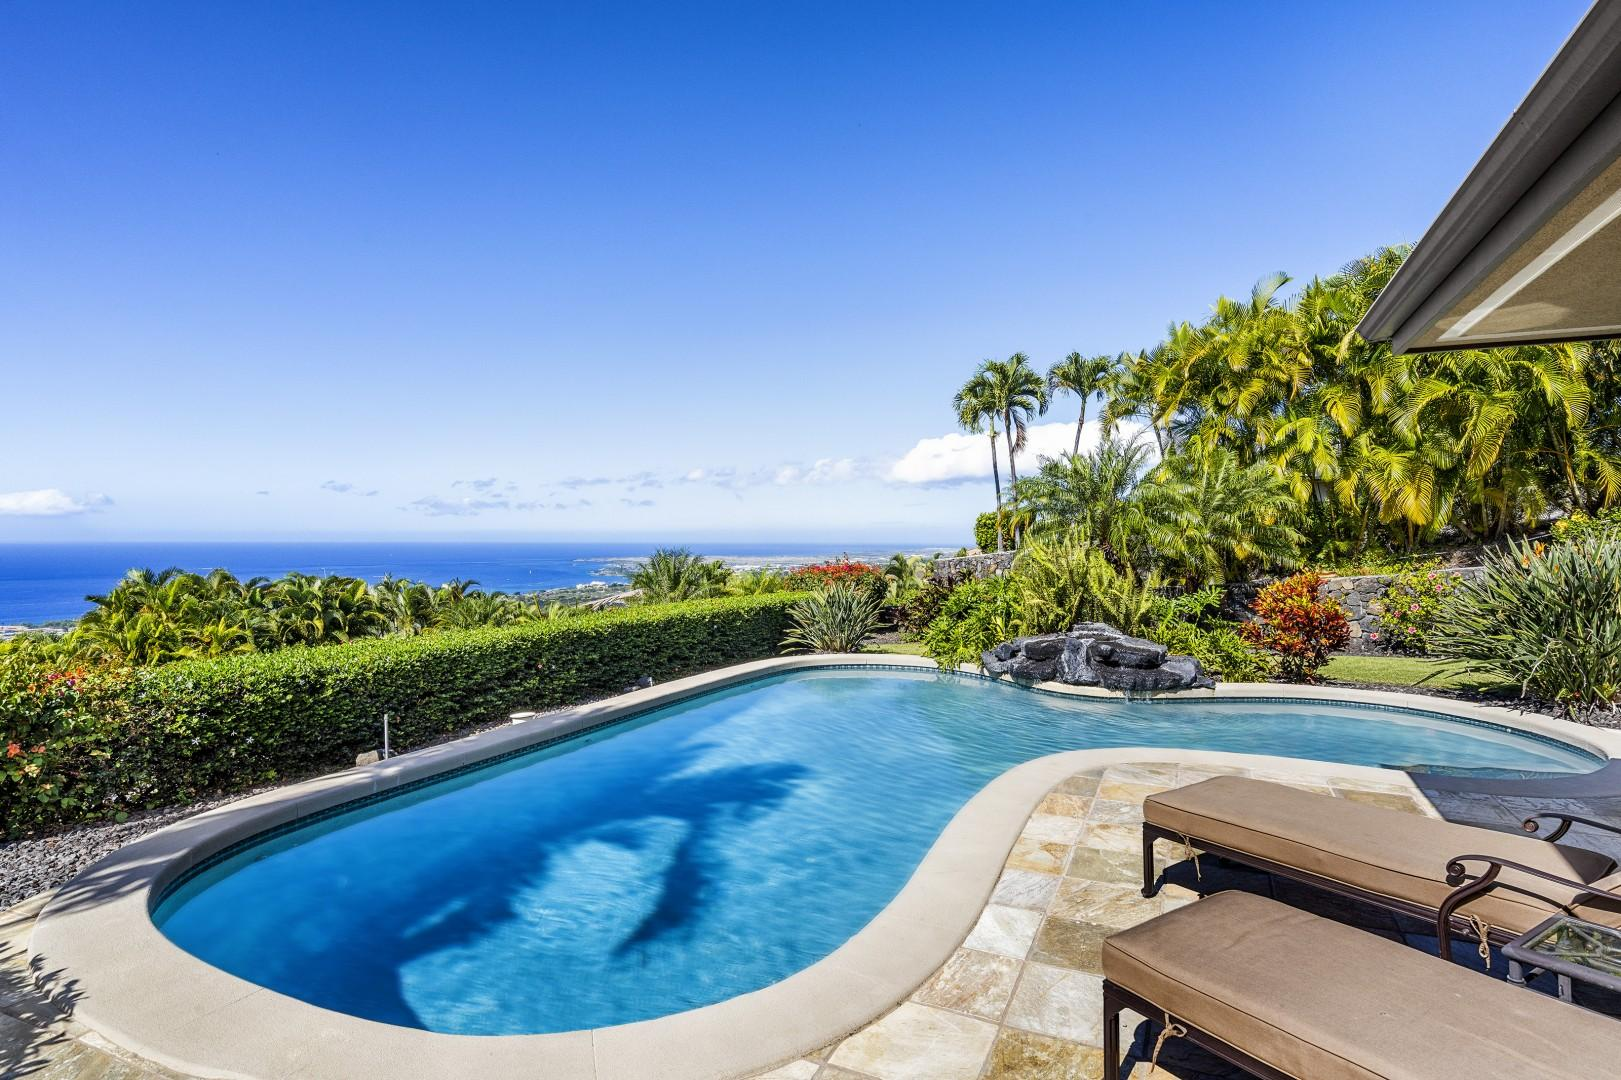 Relax in the pool while taking in the Kona Coast!